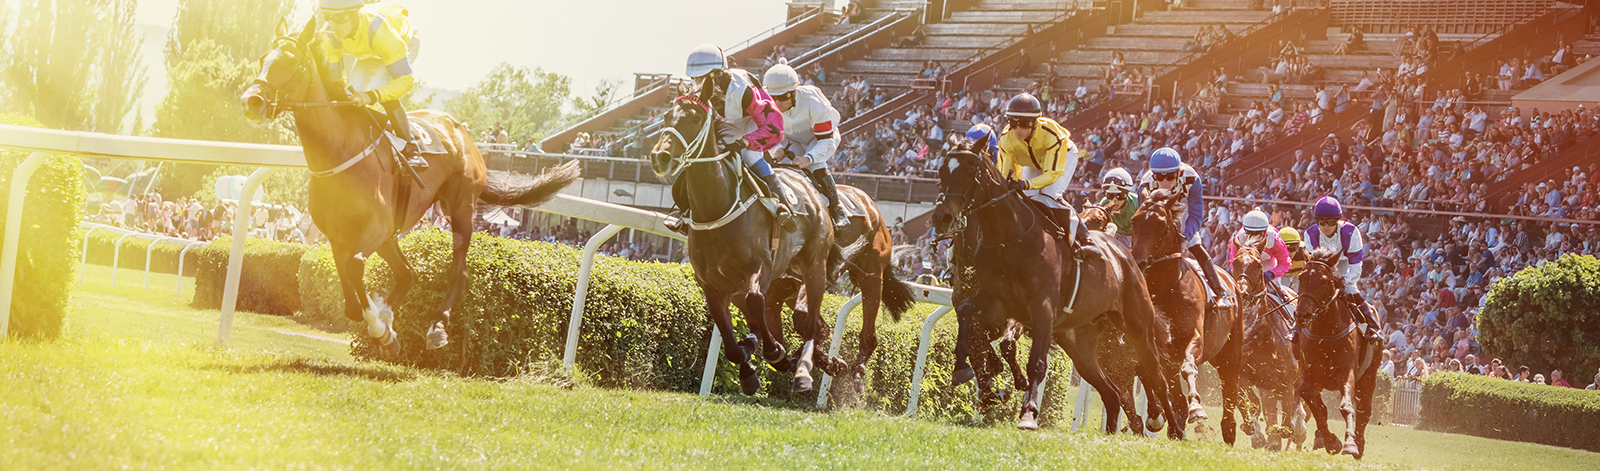 Tips to Consider for Your Next Horse Race